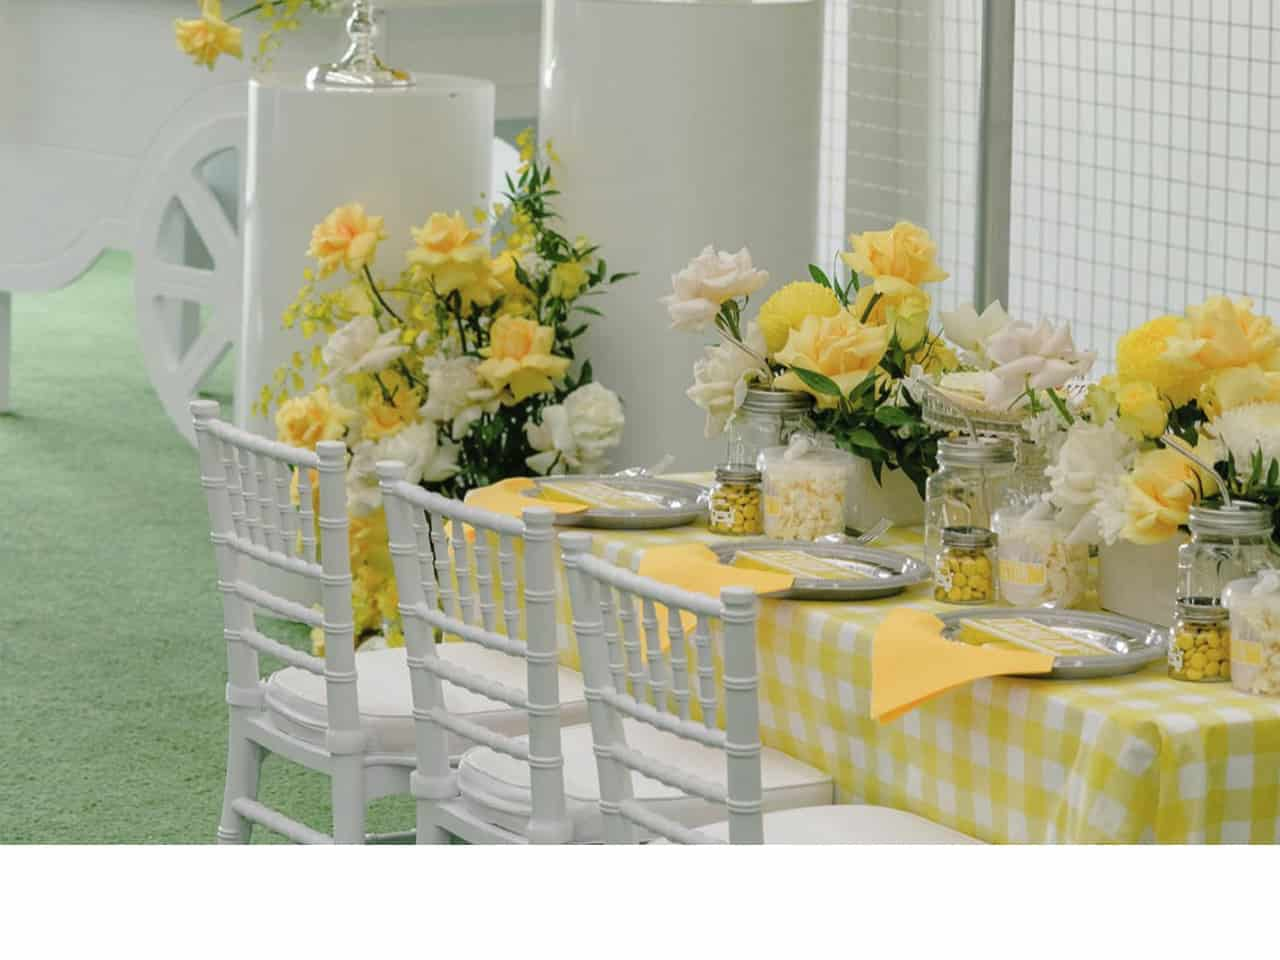 Tables with yellow decorations